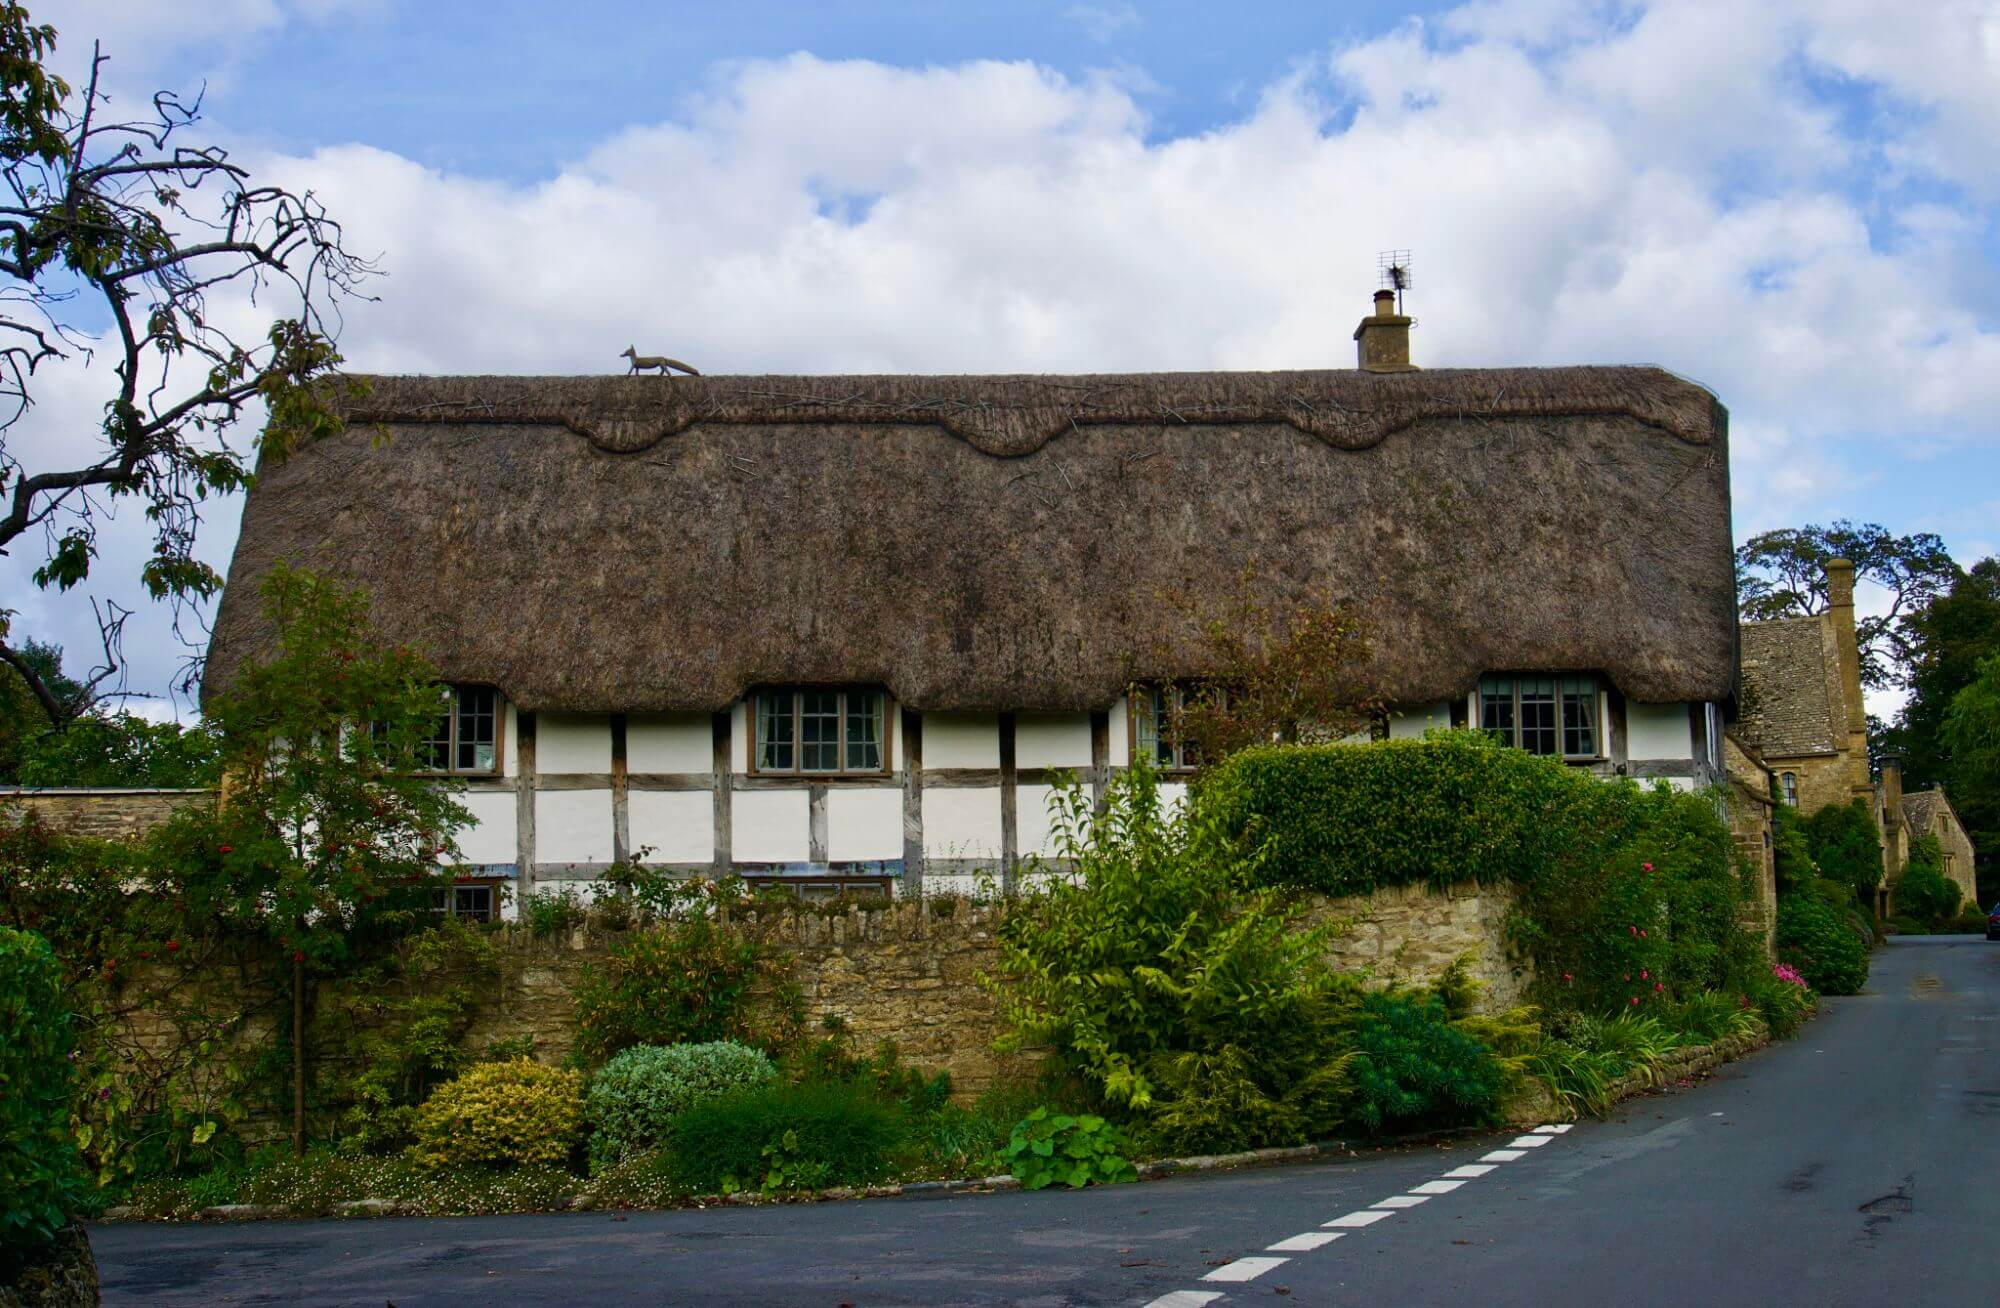 A traditional thatched home in the Cotswolds